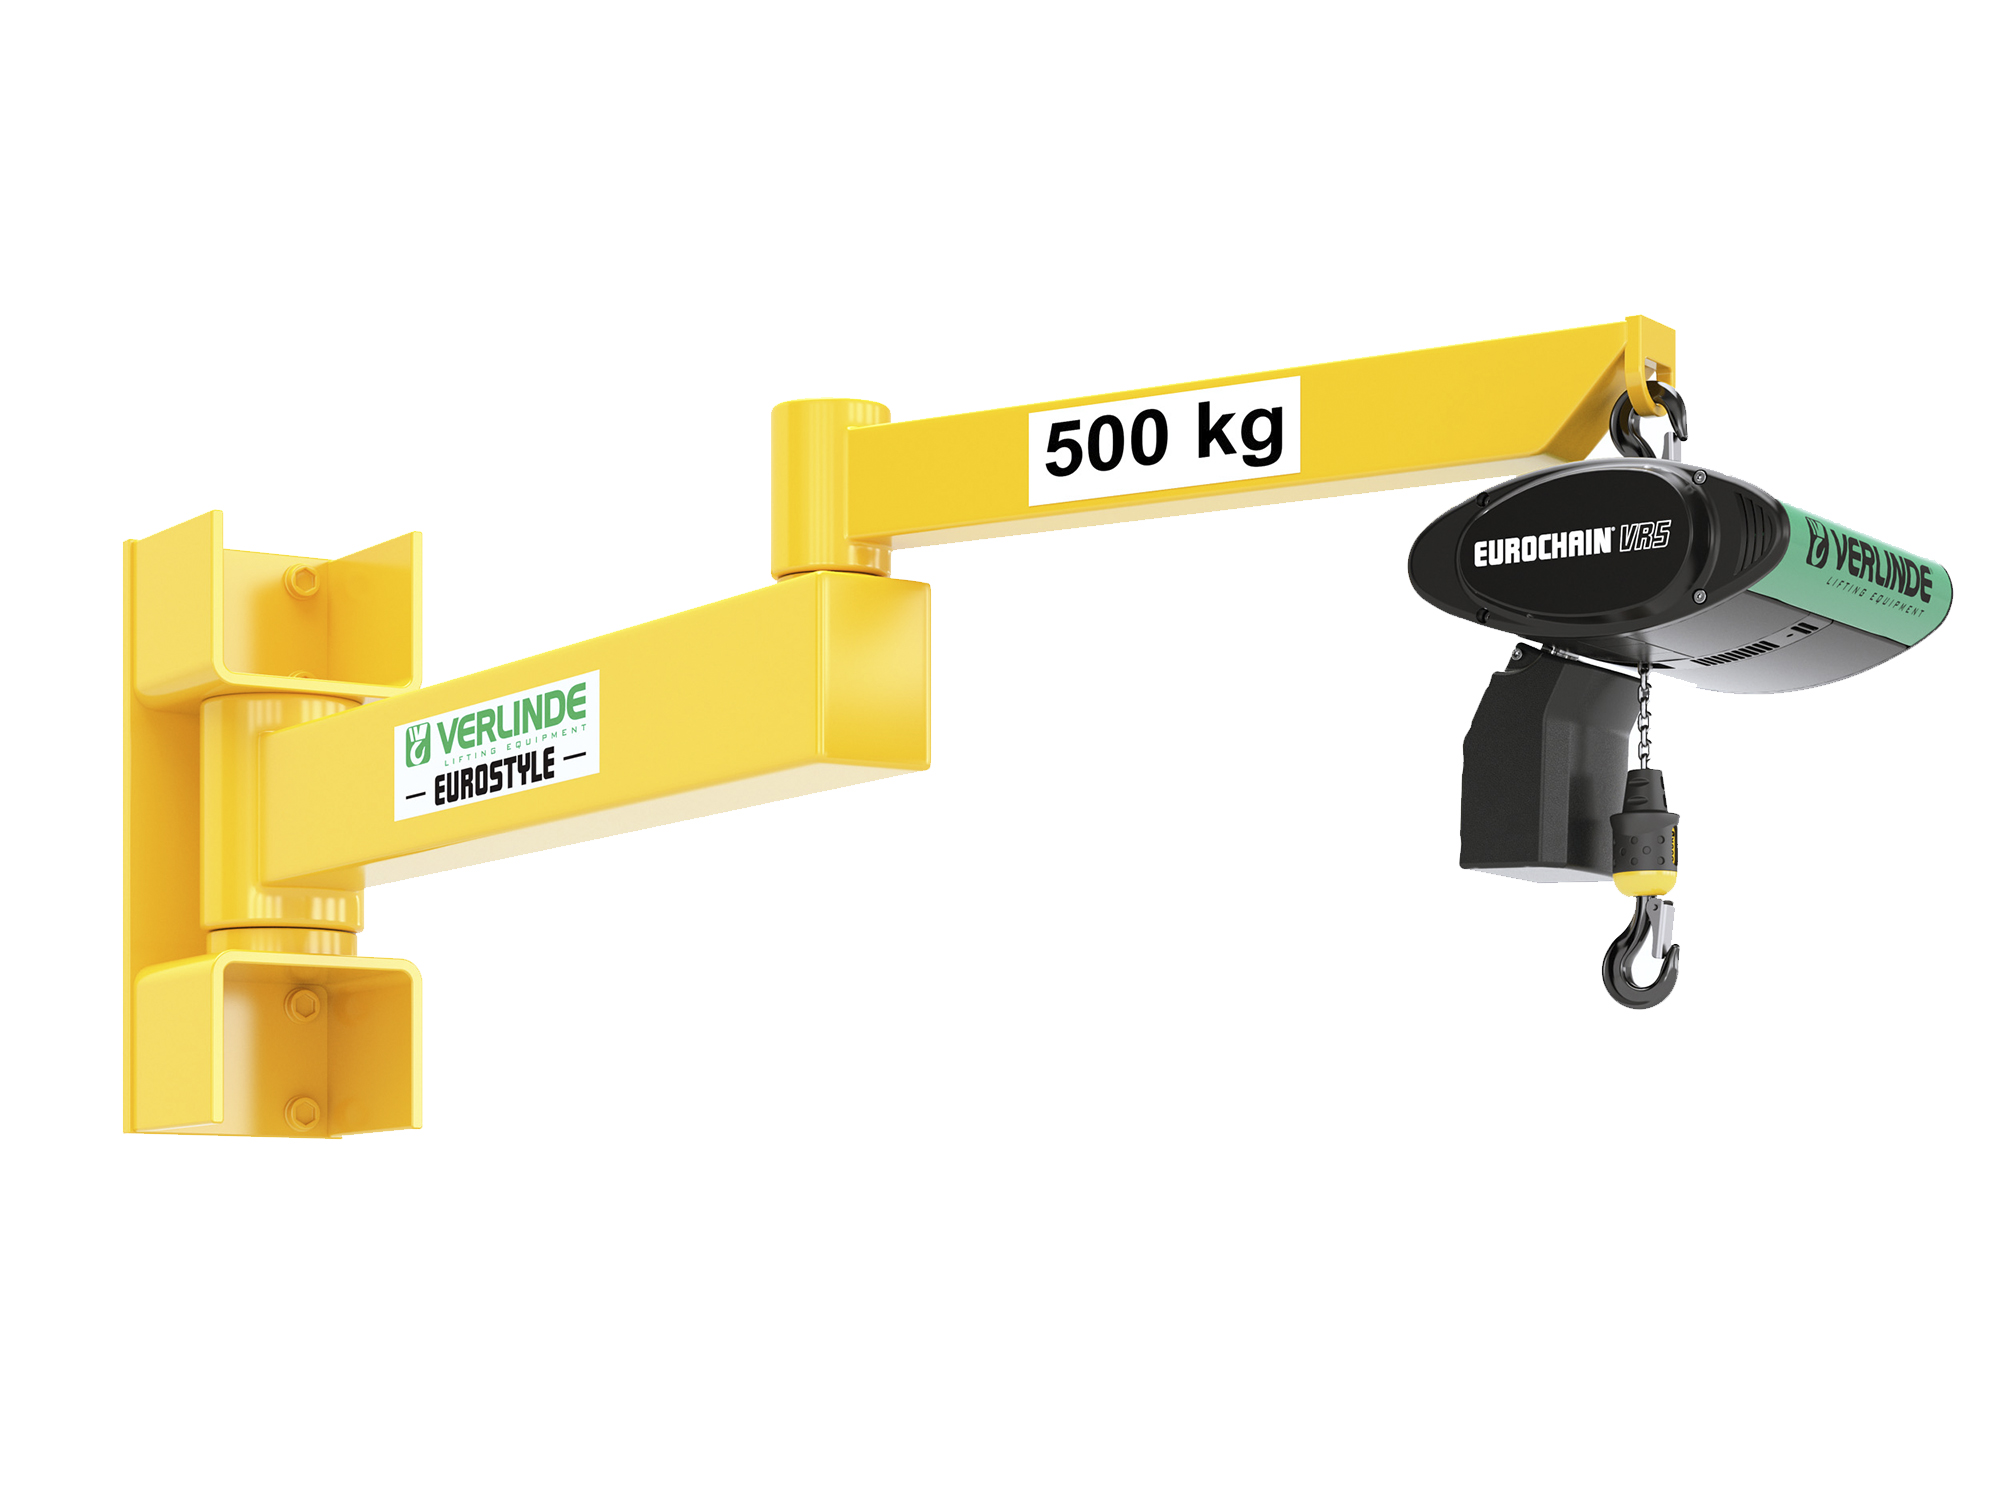 Wall Mounted Articulated Jib Crane For 10 000kg Loads And